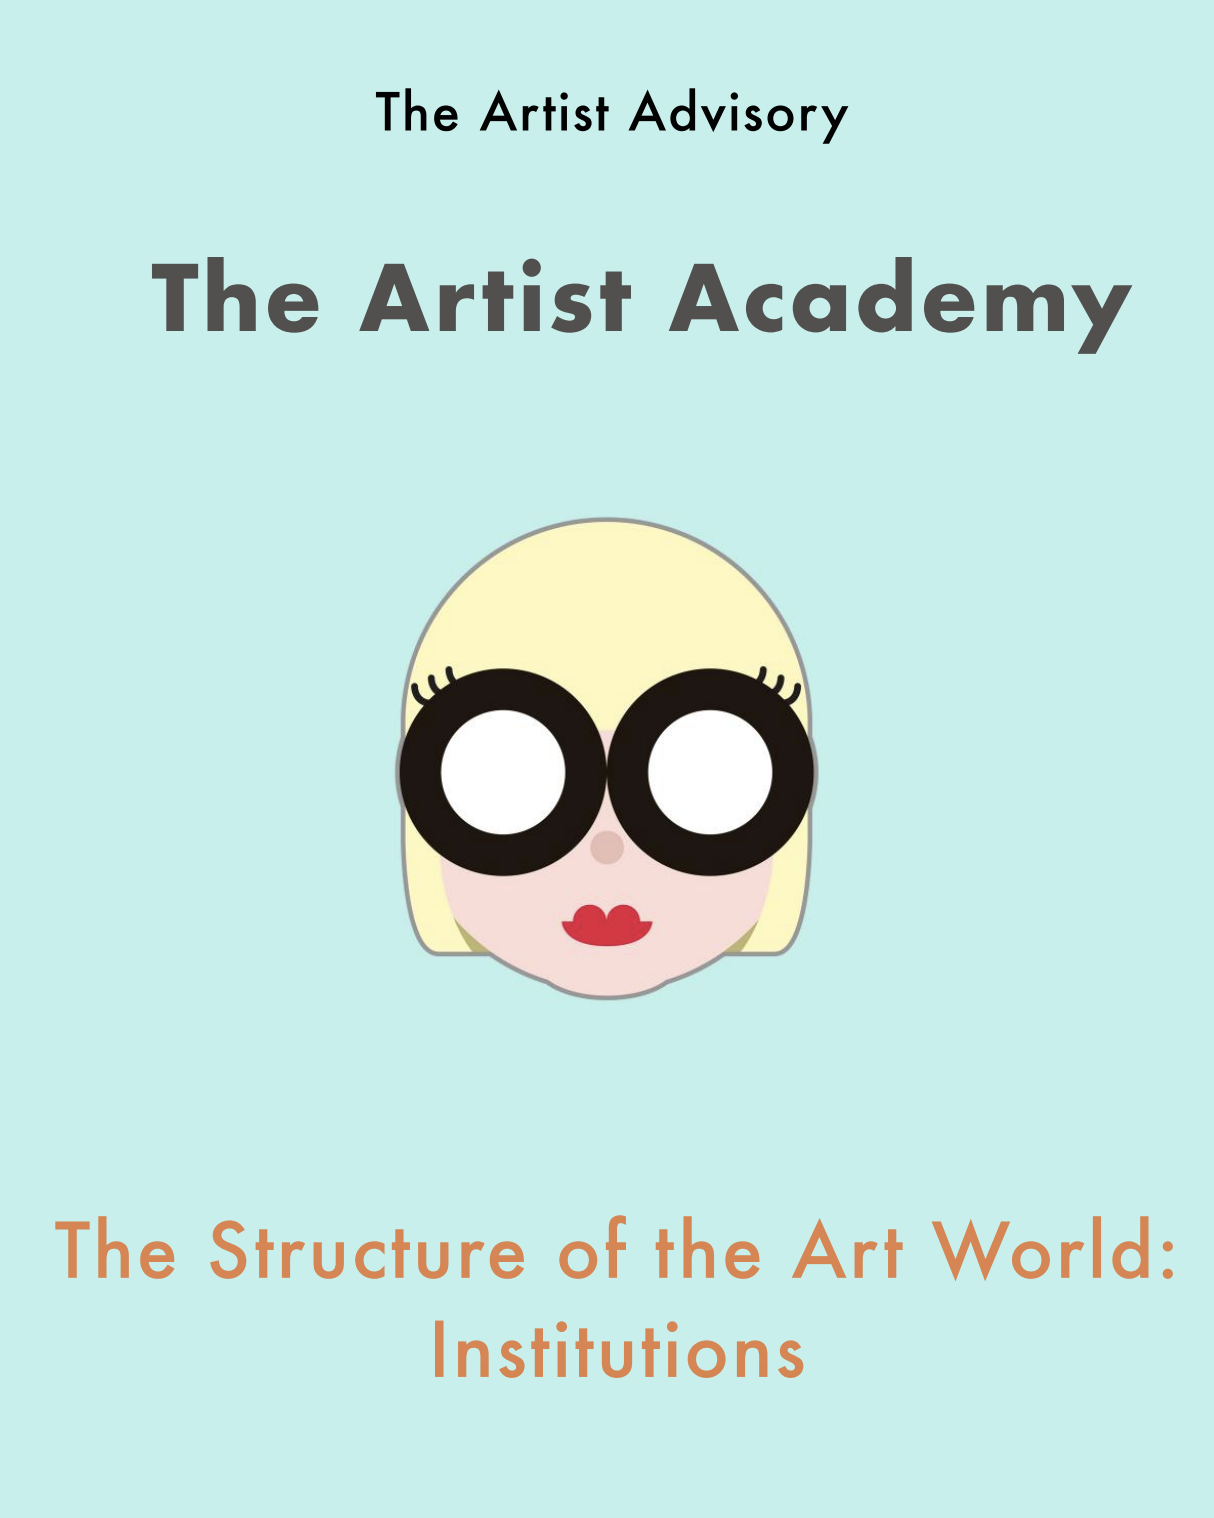 The Structure of the Art World - Institutions.png